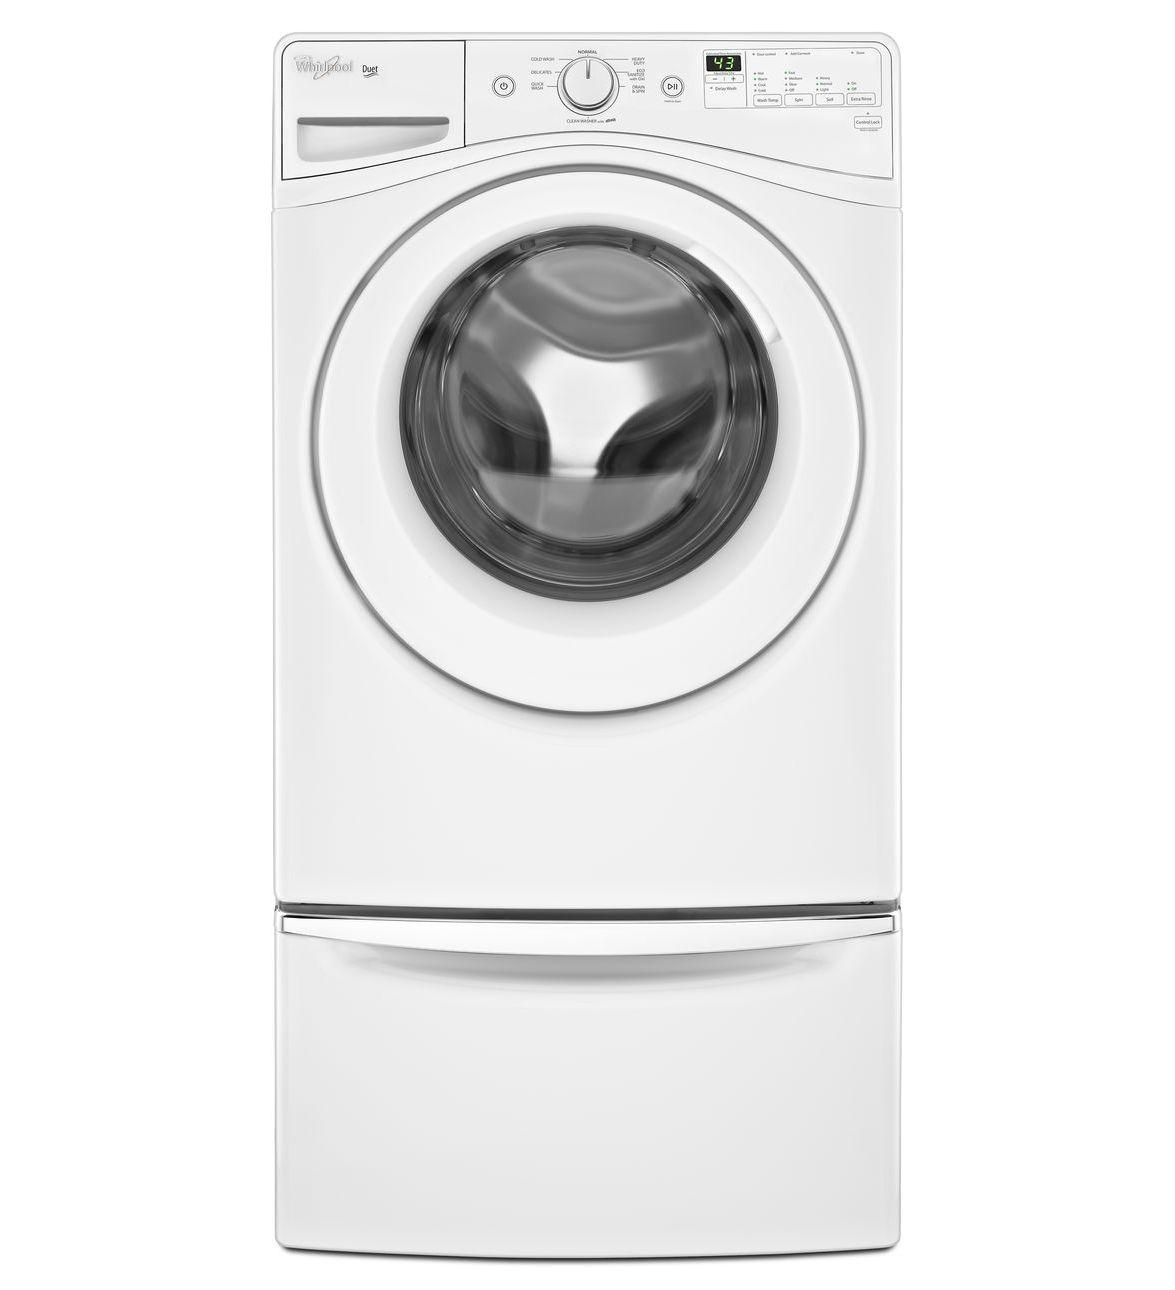 Wfw72hedw Whirlpool Wfw72hedw Duet Front Load Tumble